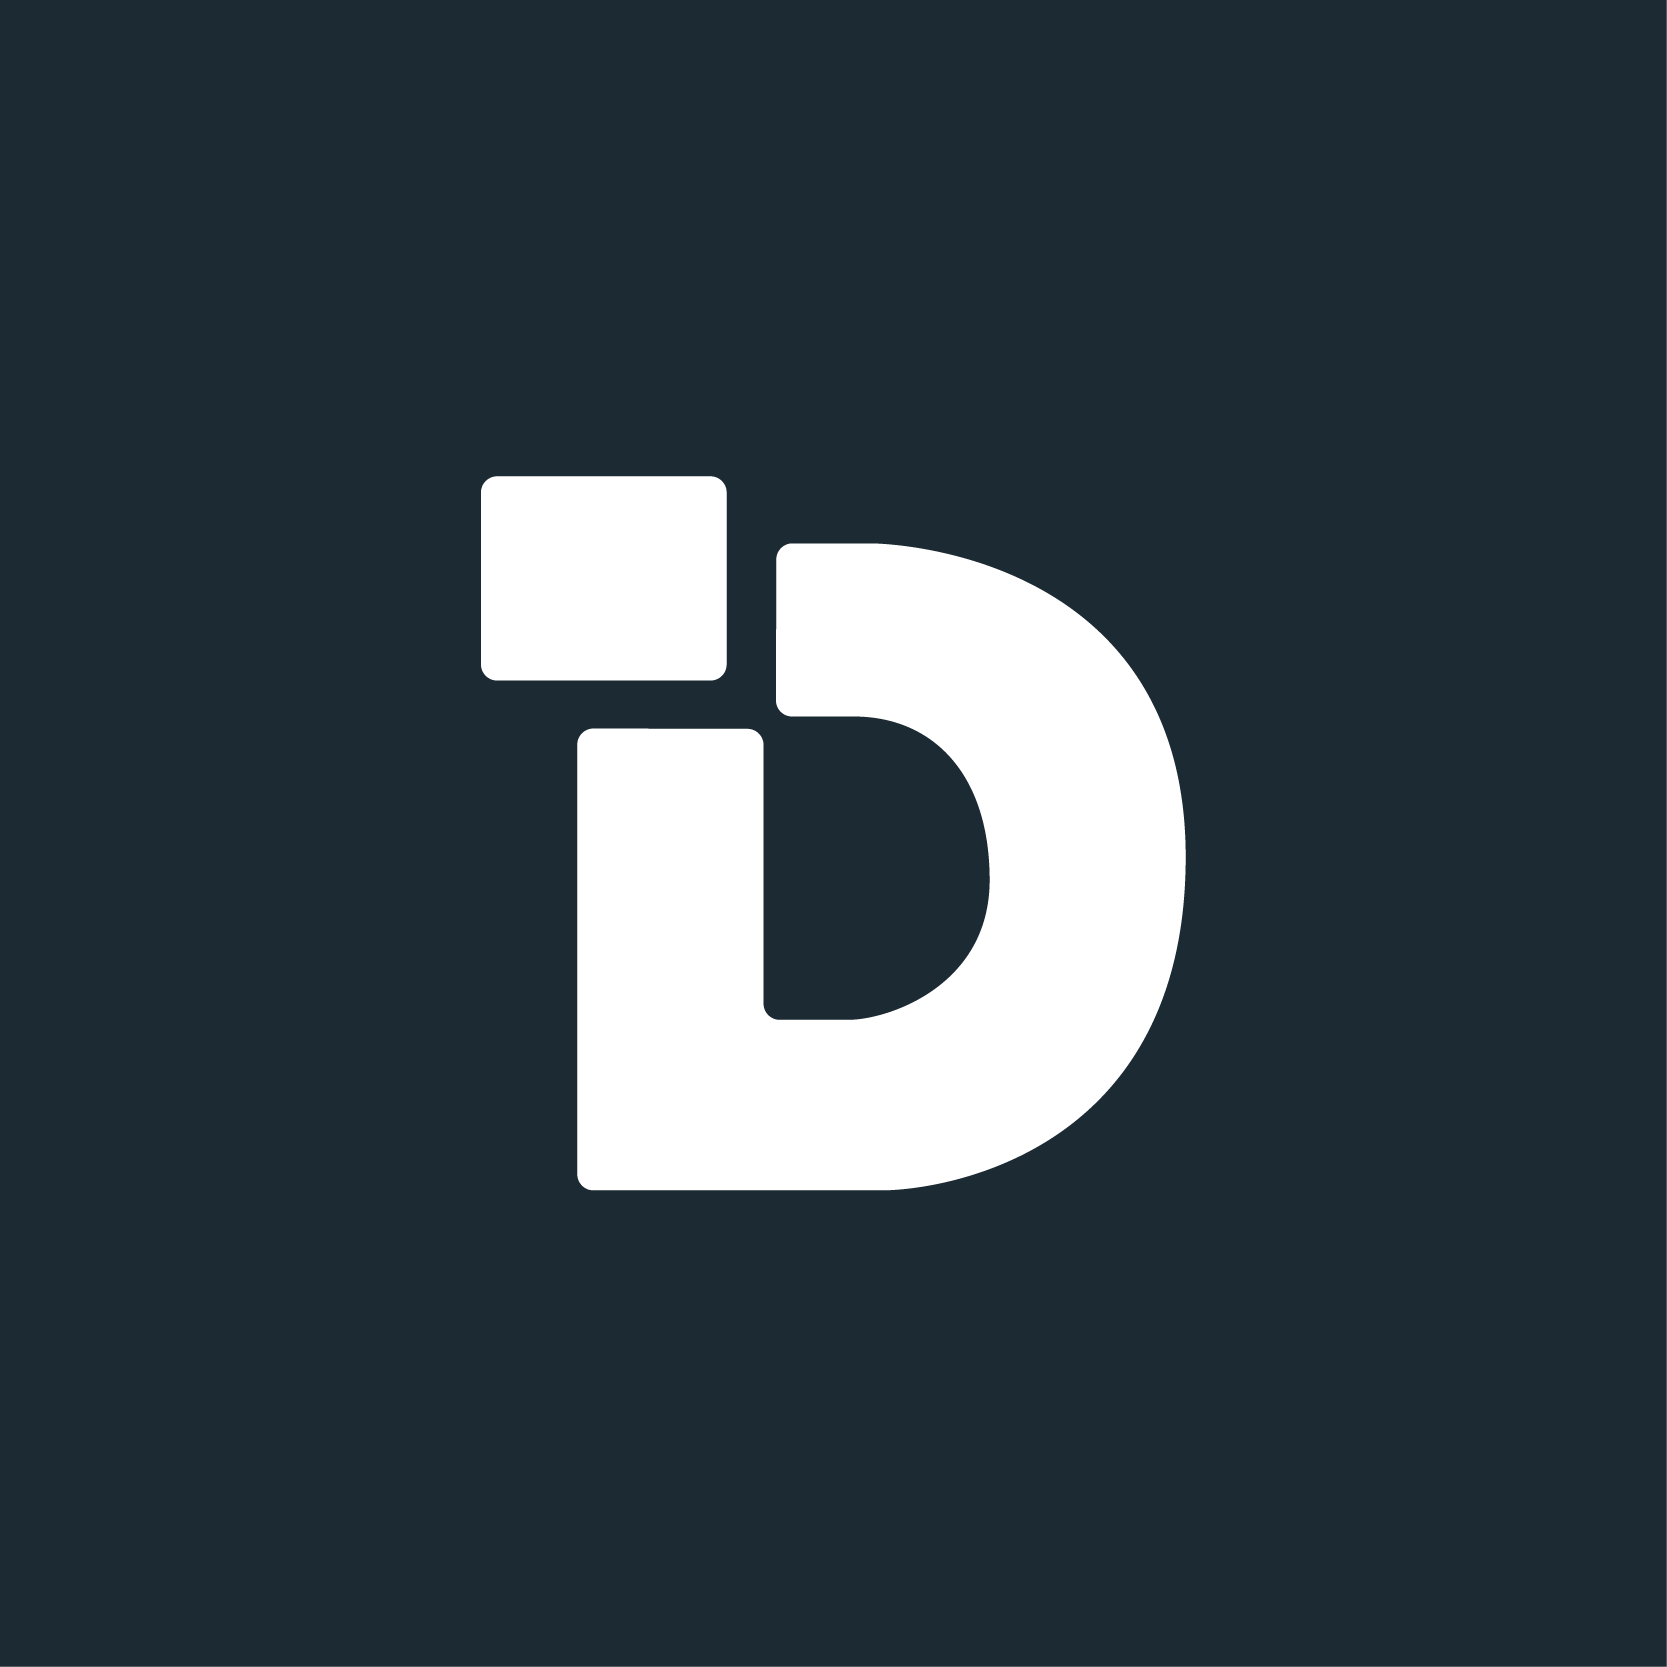 Dexter - pricing, customer reviews, features, free plans, alternatives, comparisons, service costs.